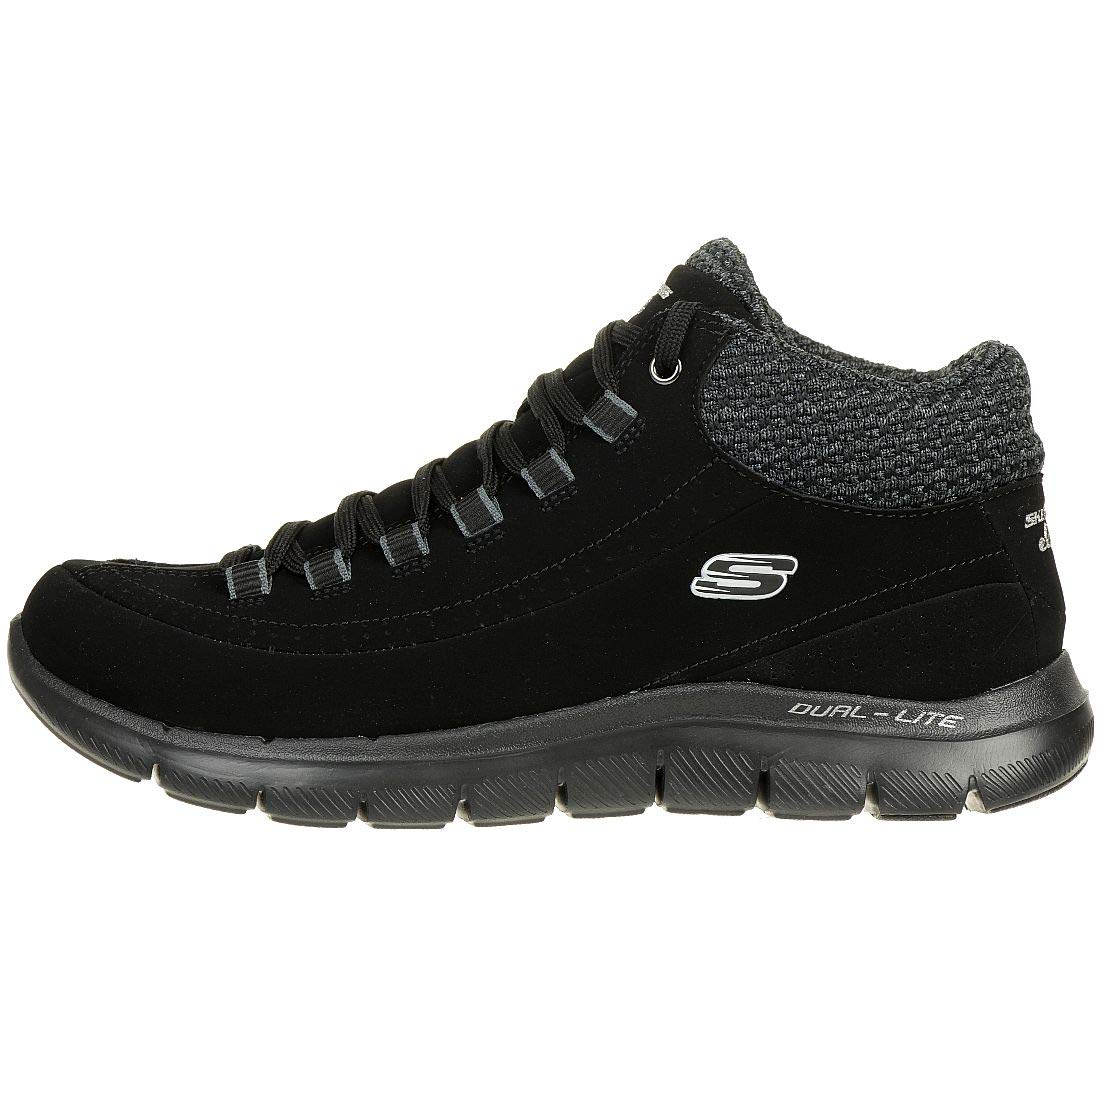 Skechers Nights Warm Women Flex 0 2 Lite Snowy Sneaker Appeal Dual c3ARjq54L